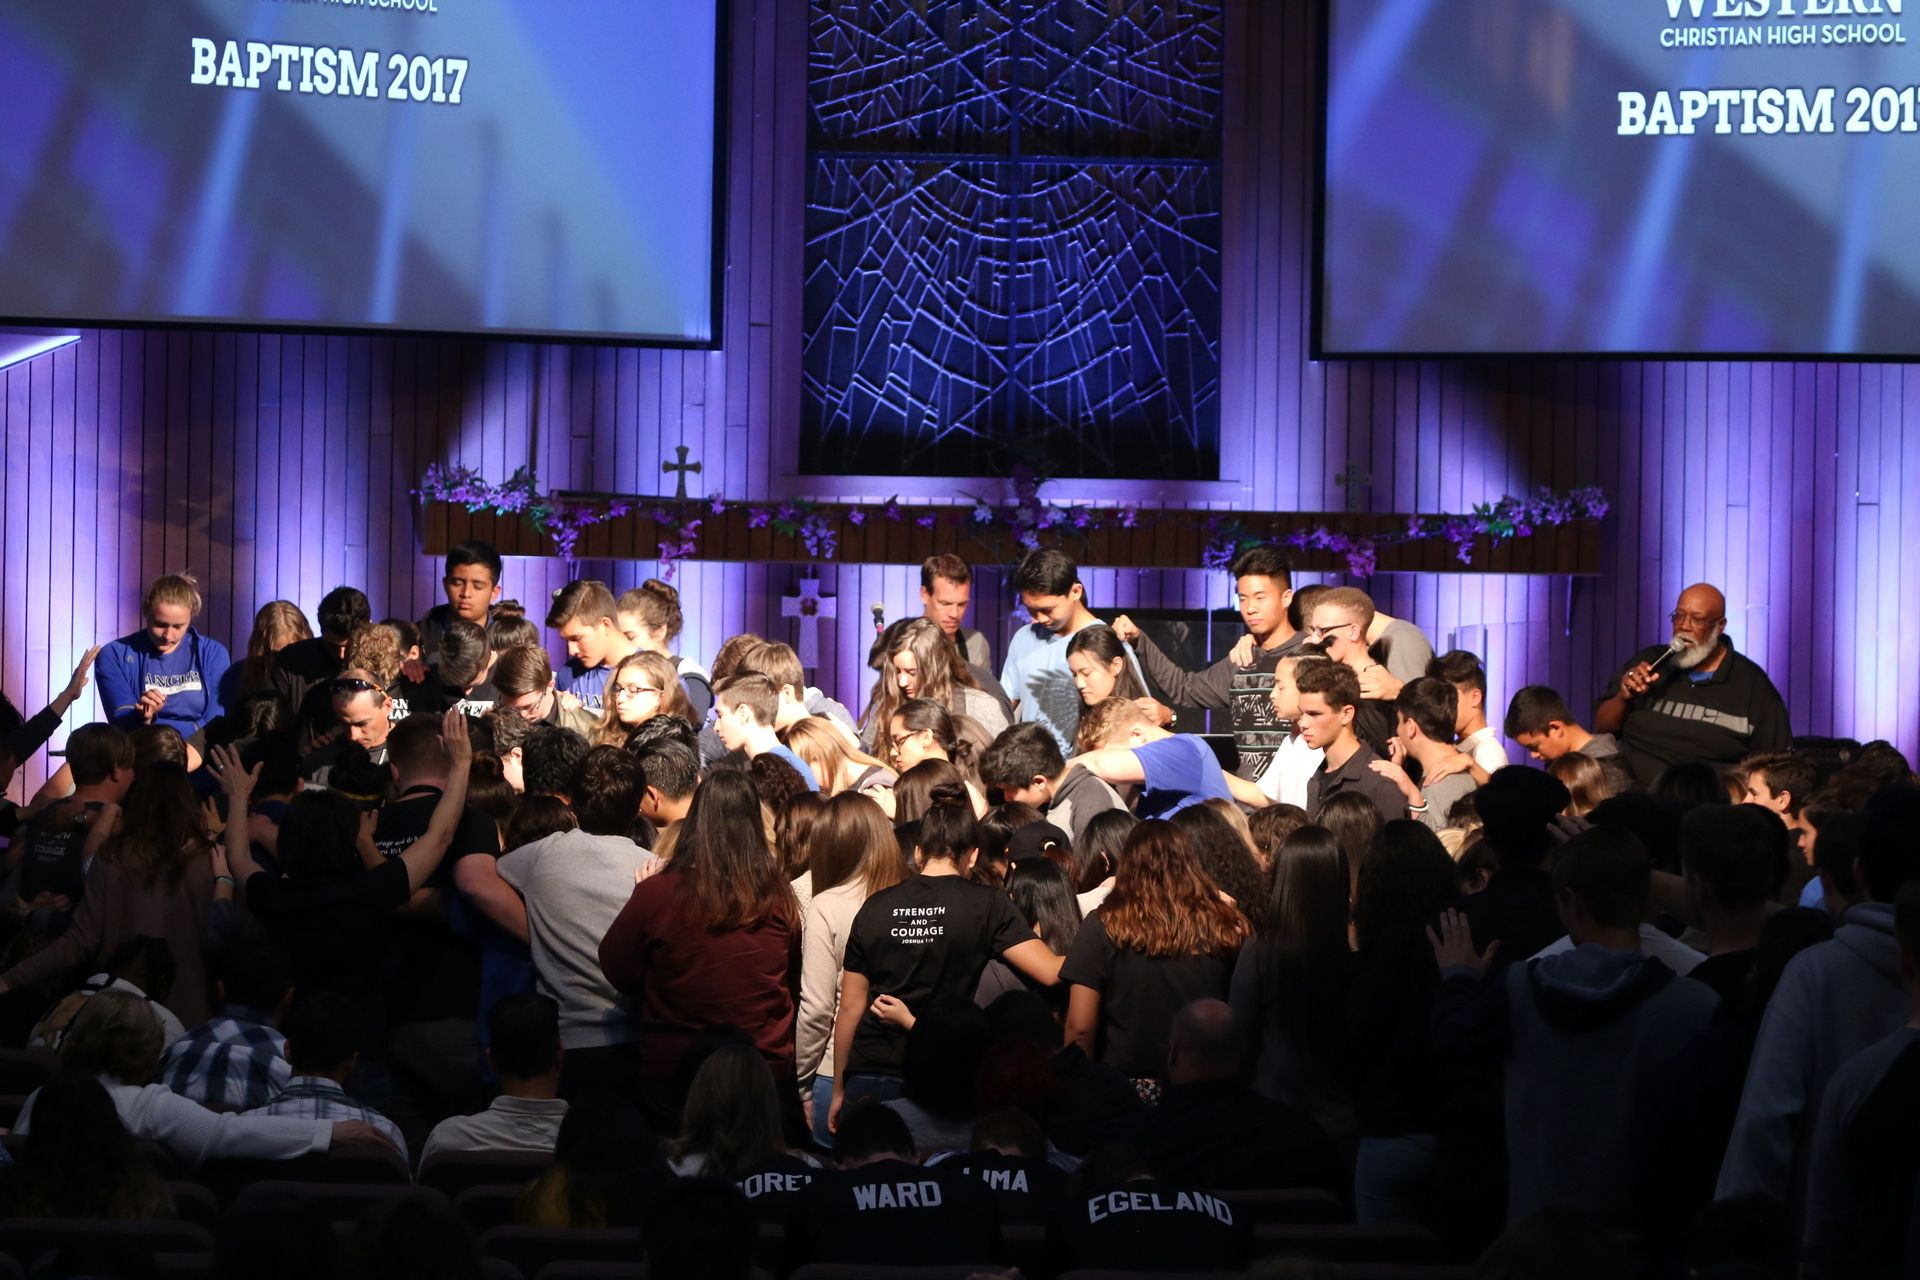 Western Christian Schools Private Schools In Claremont Upland Ca Spiritual Life